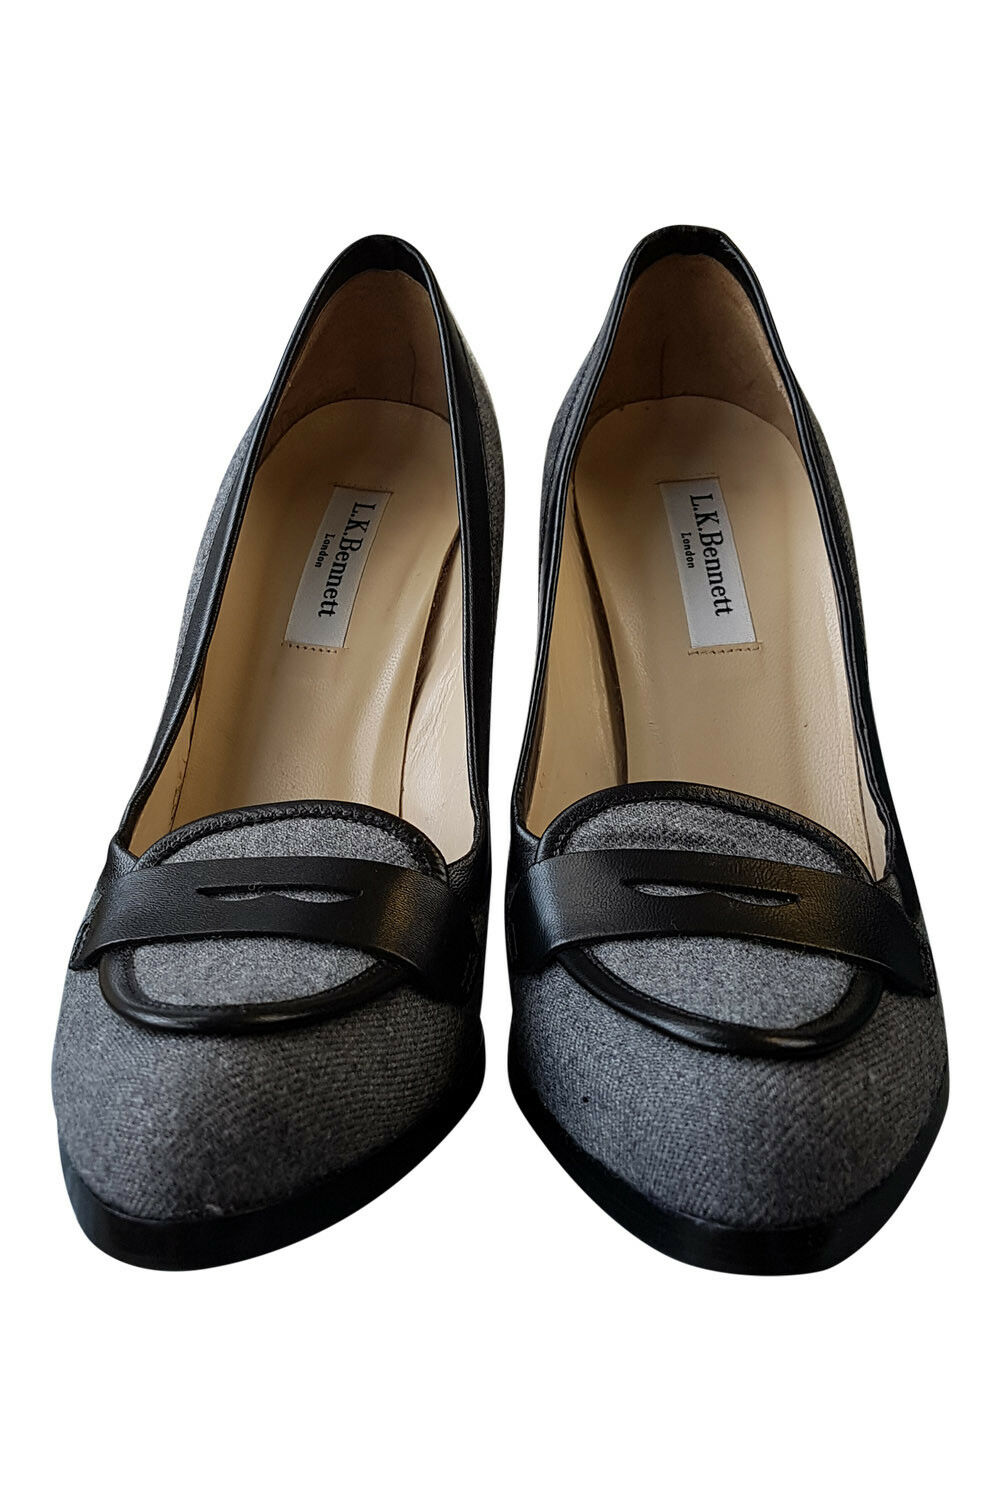 LK BENNETT GREY FABRIC (37) LOAFER STYLE STILETTO HEELS (37) FABRIC c87b53